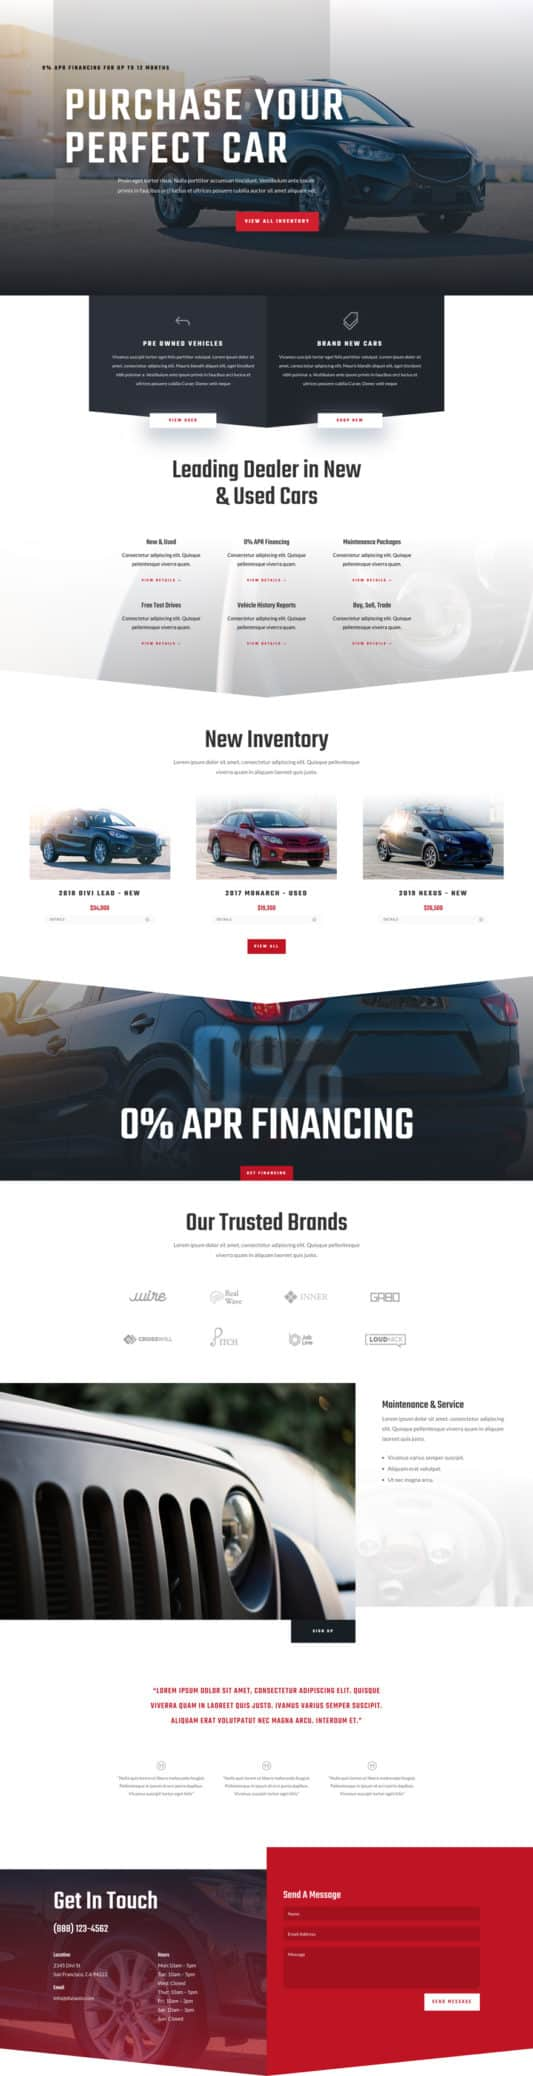 Car Dealer Web Design 5